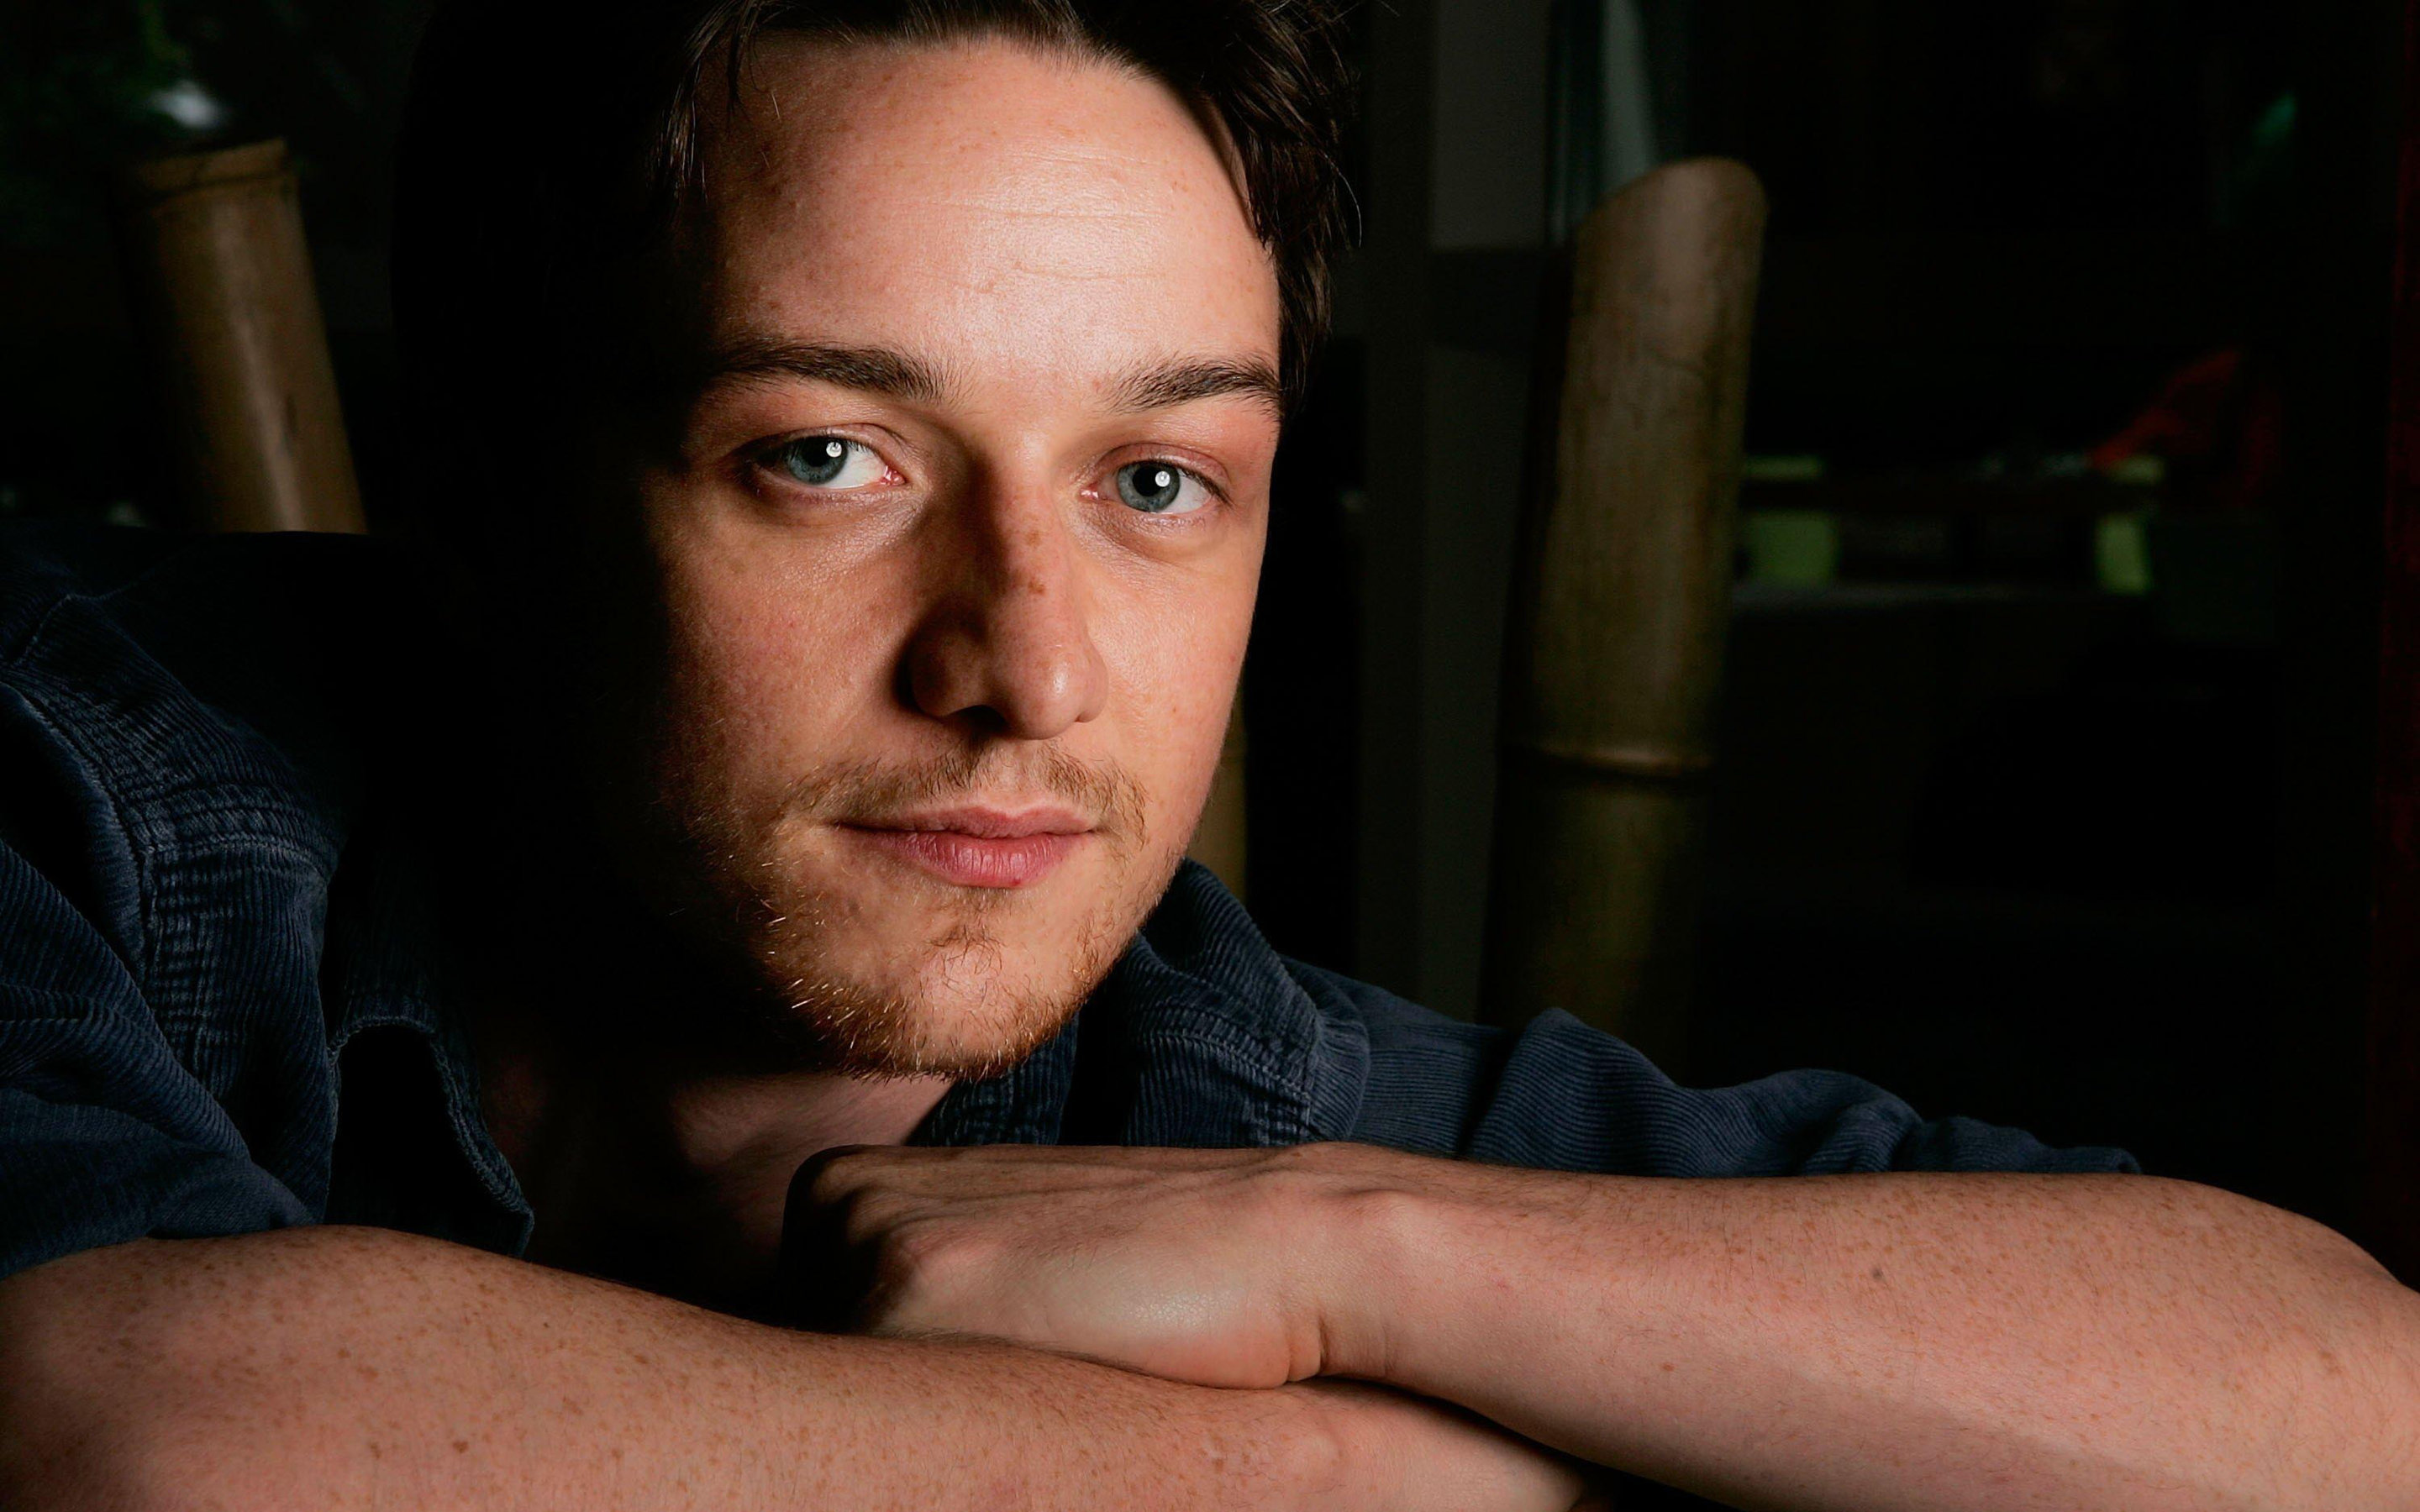 Awesome James McAvoy free wallpaper ID:254989 for hd 2880x1800 computer